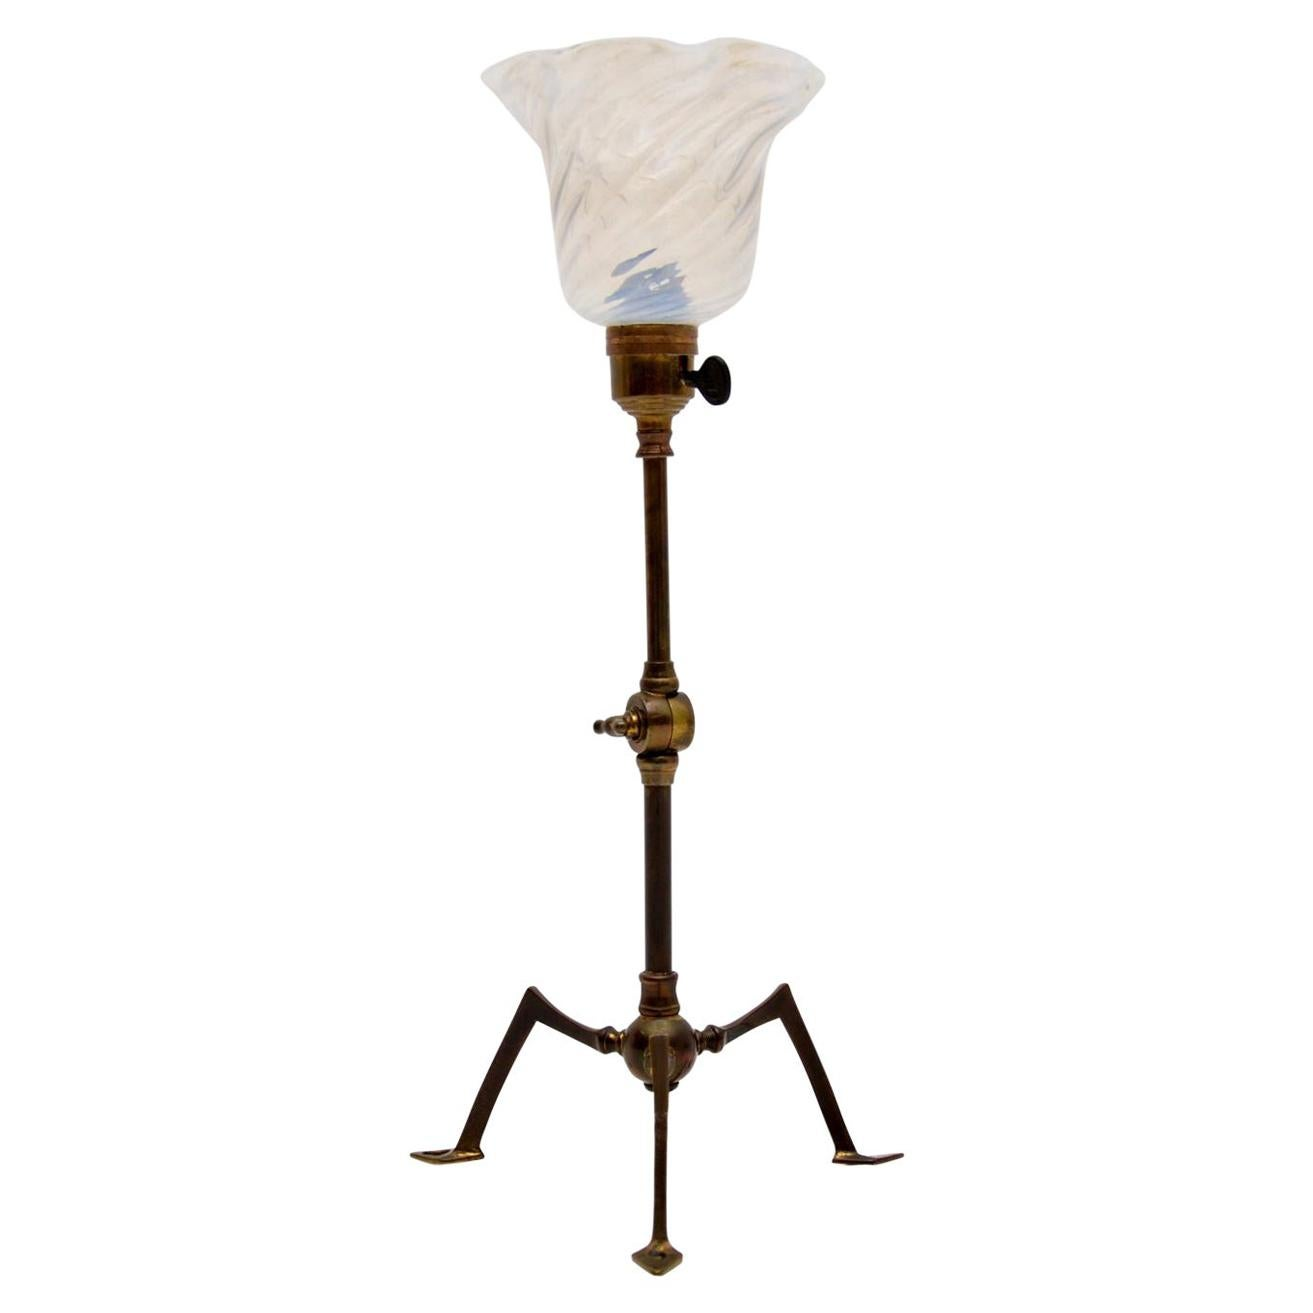 Antique Arts & Crafts Table or Wall Lamp by W.A.S Benson